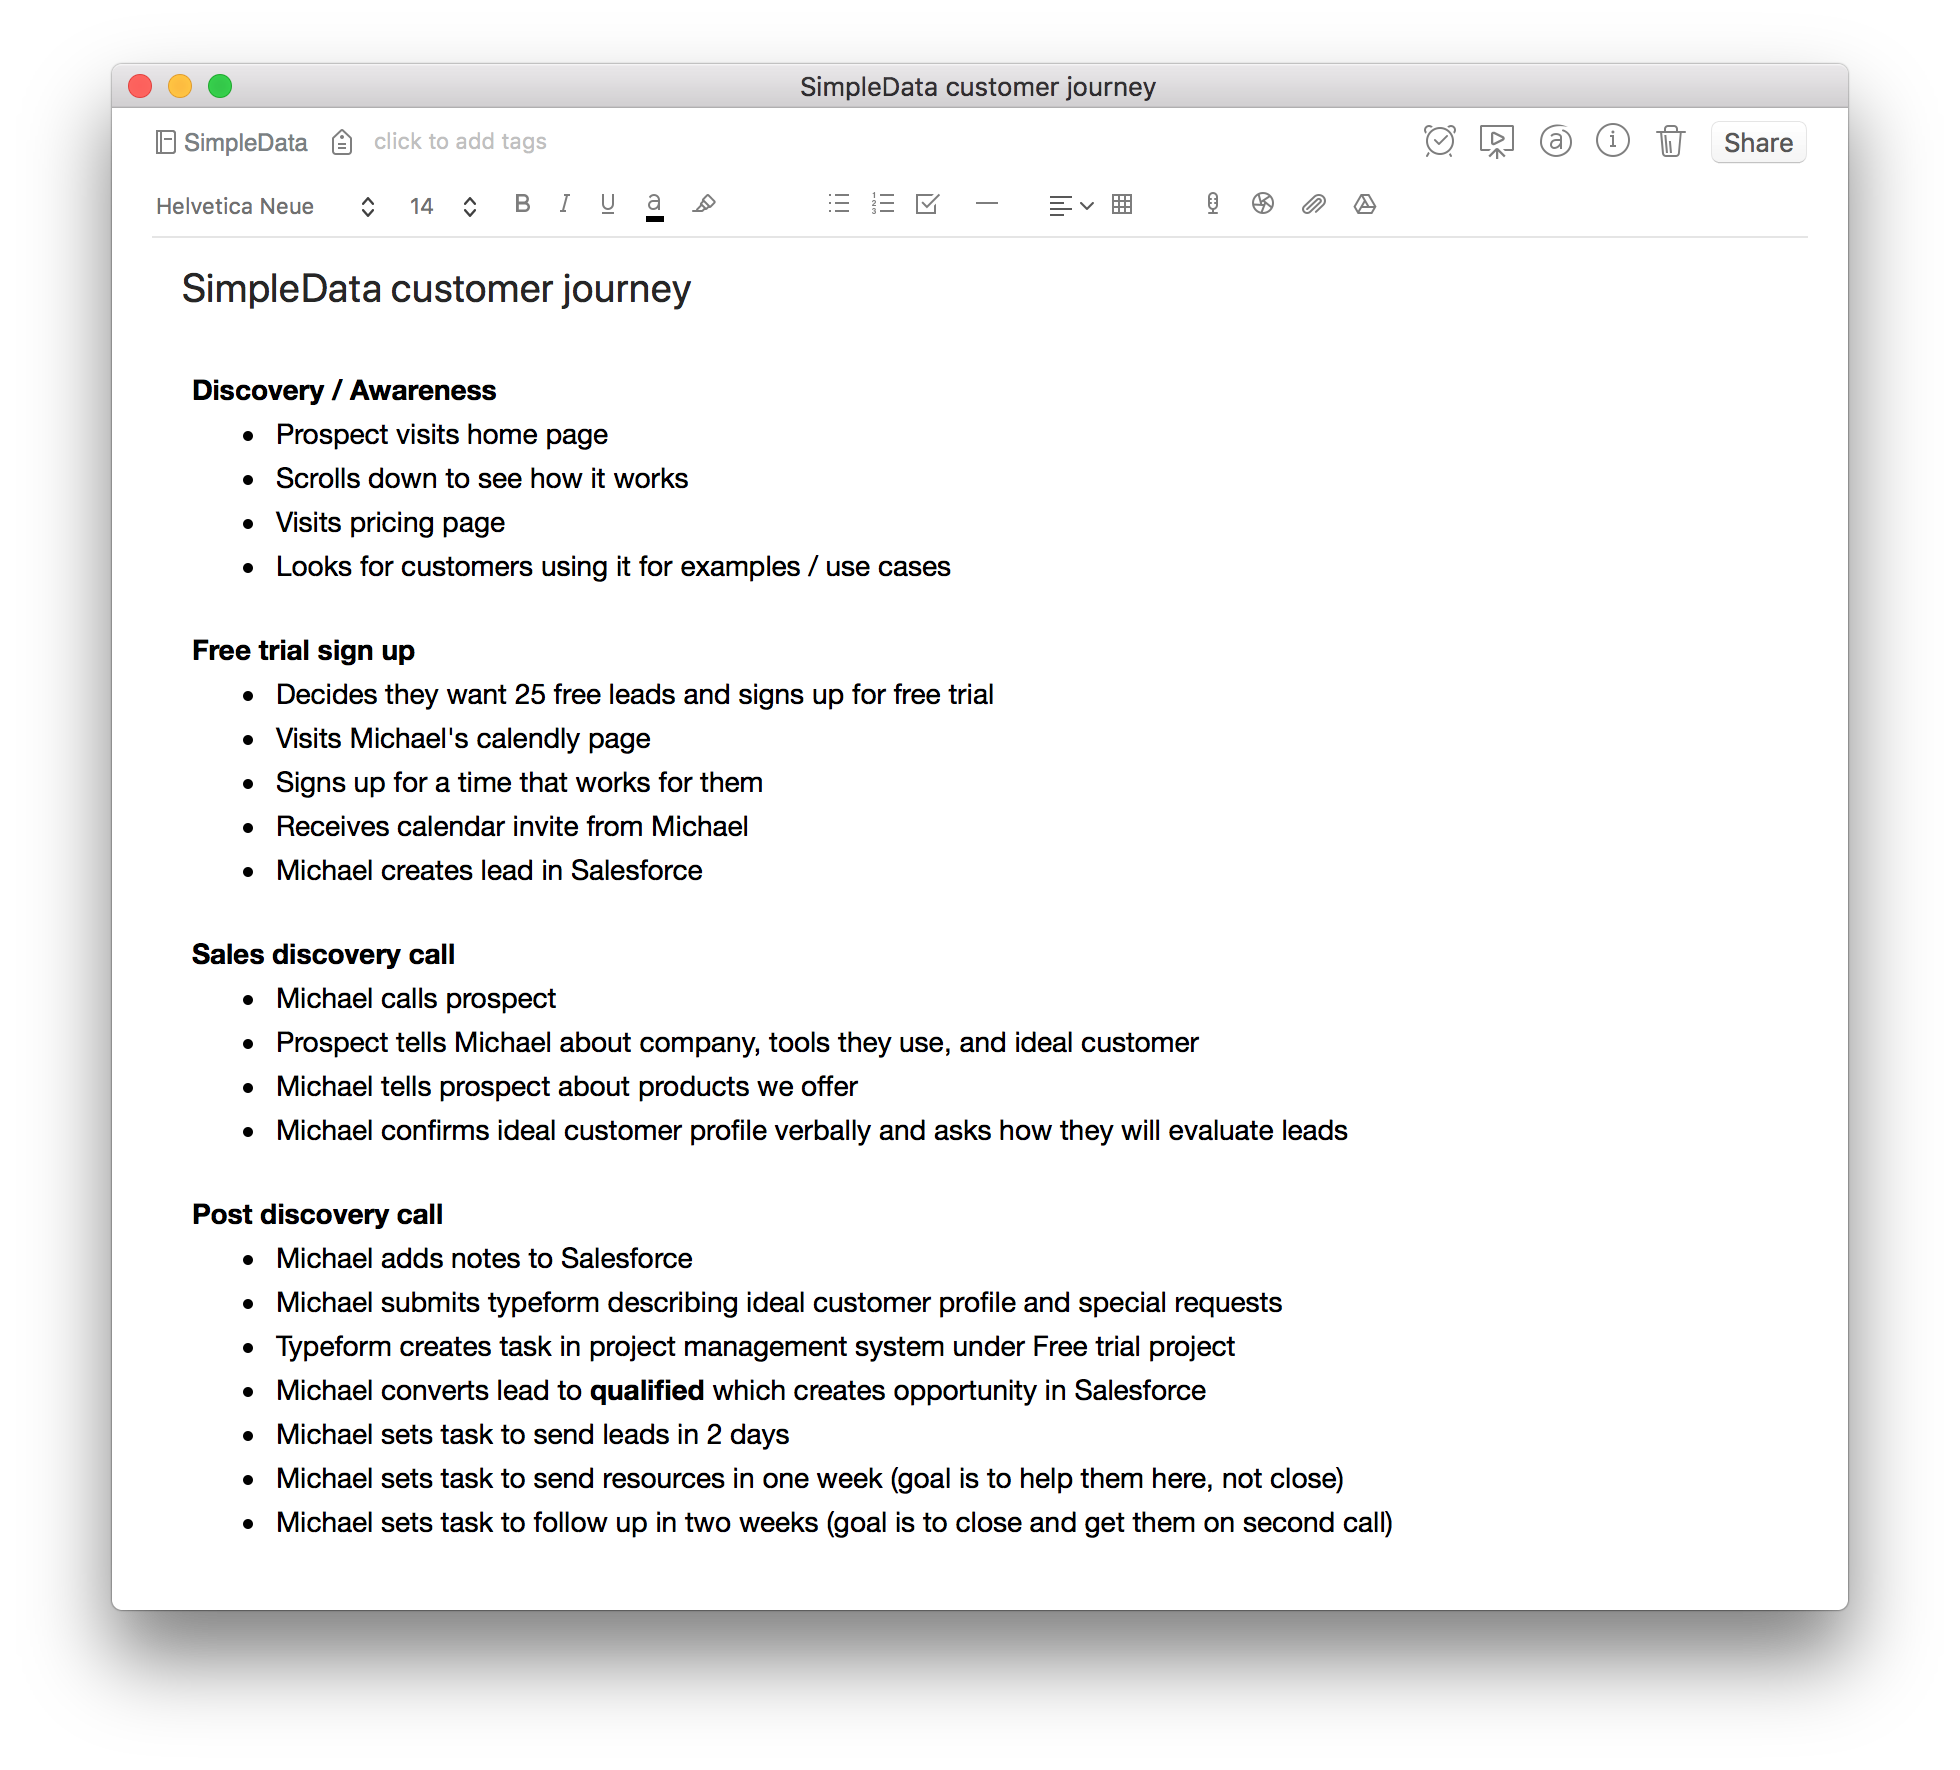 This is the Evernote where I outlined the entire customer journey. Note: this is only the first half which documents the sales and free trial process.